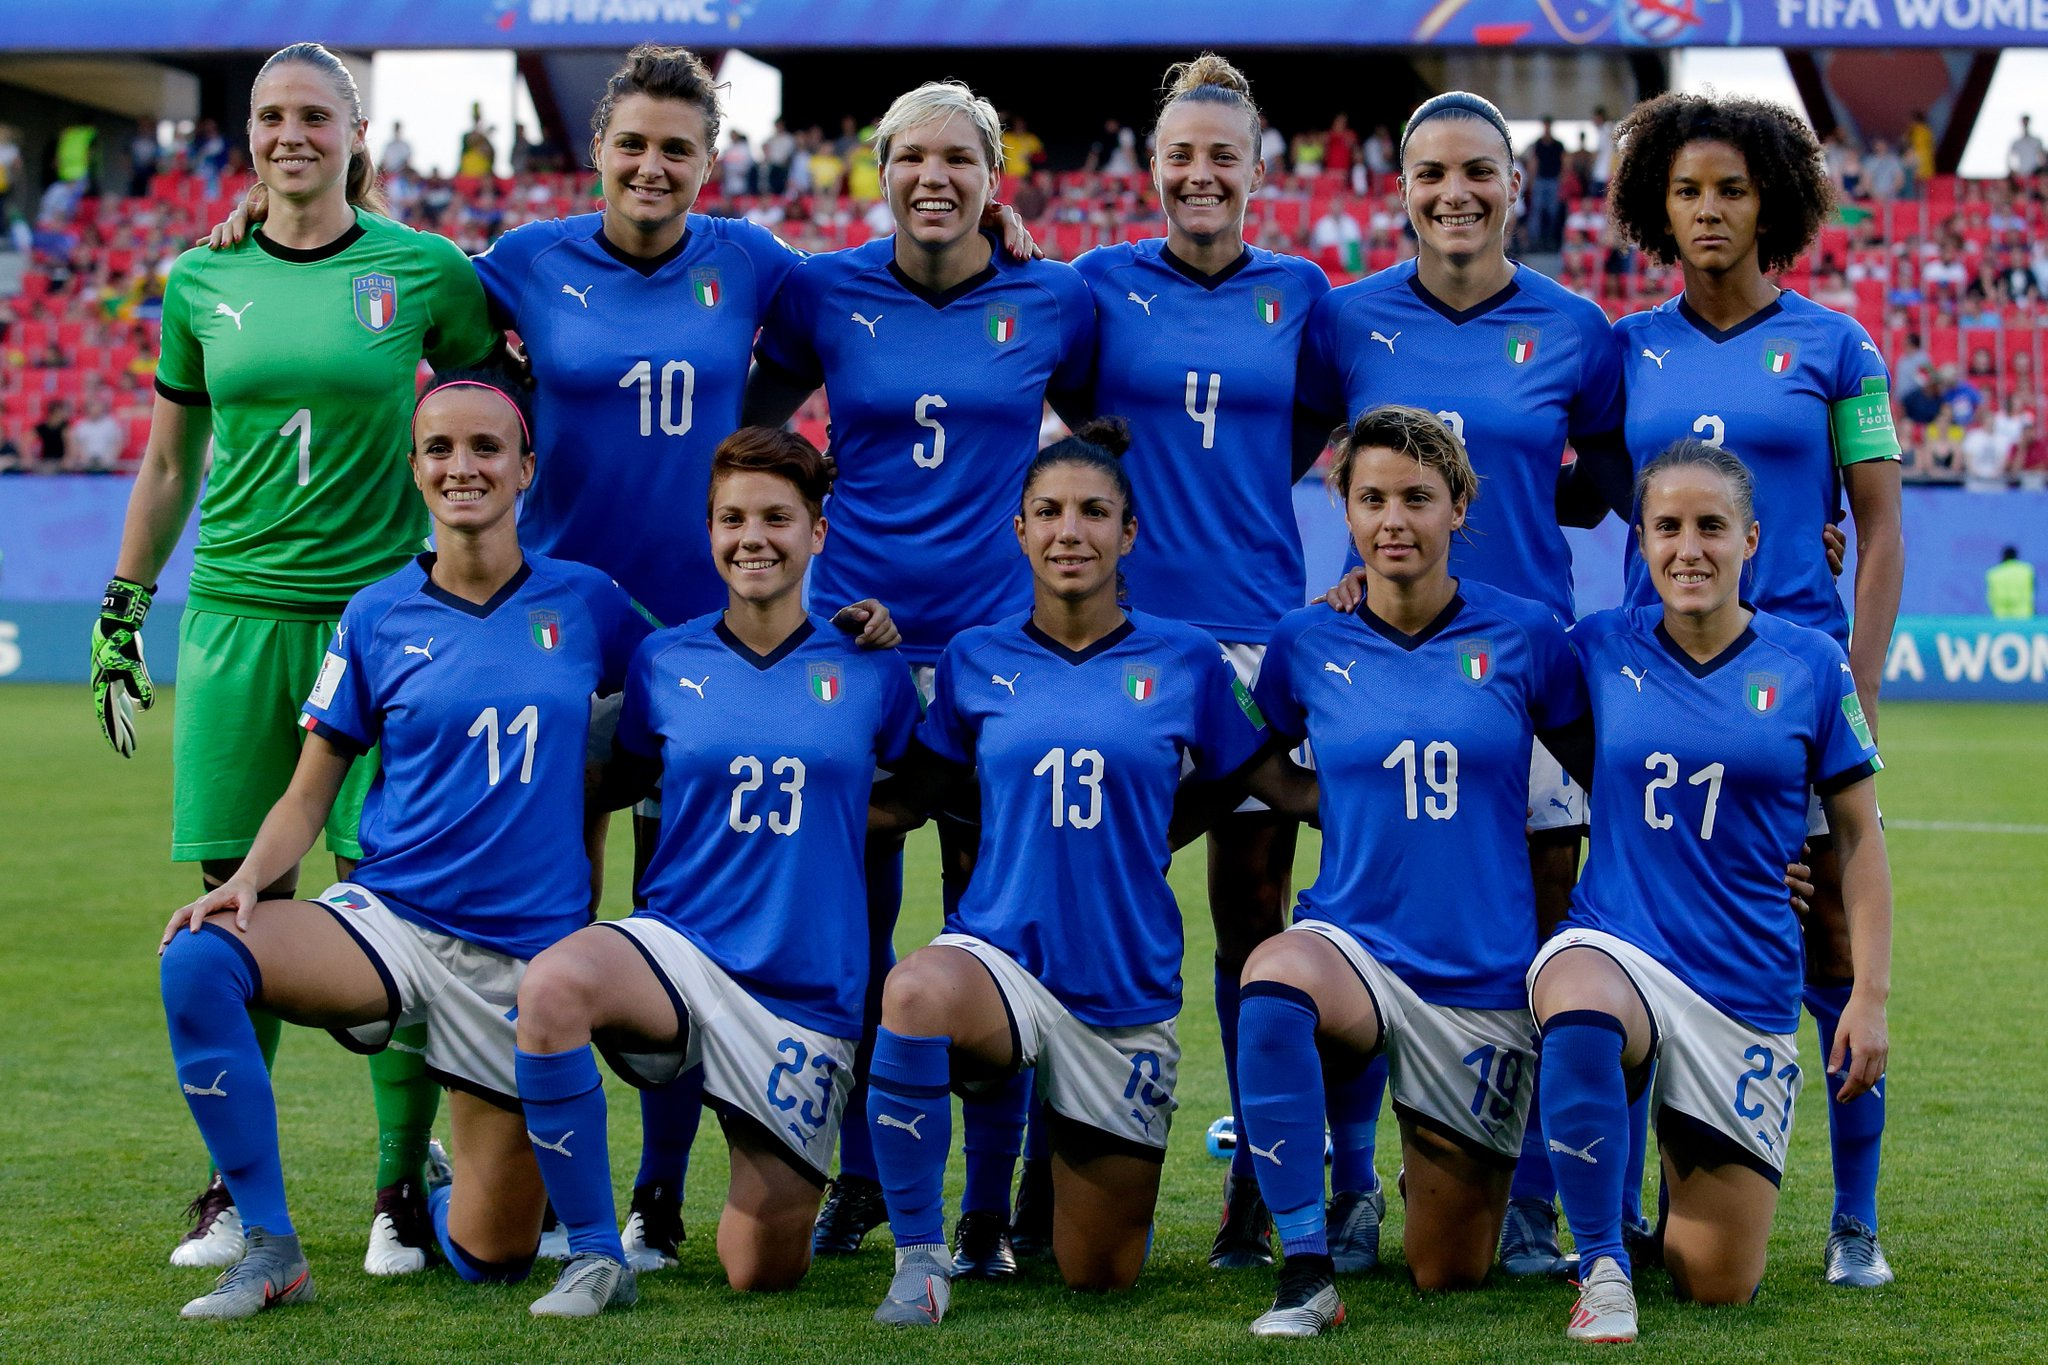 Congratulations to @AzzurreFIGC and our #JuventusWomen playing in the #FIFAWWC on reaching the knockout stages, topping Group C!  🎉🎊 https://t.co/zg16qljOnd